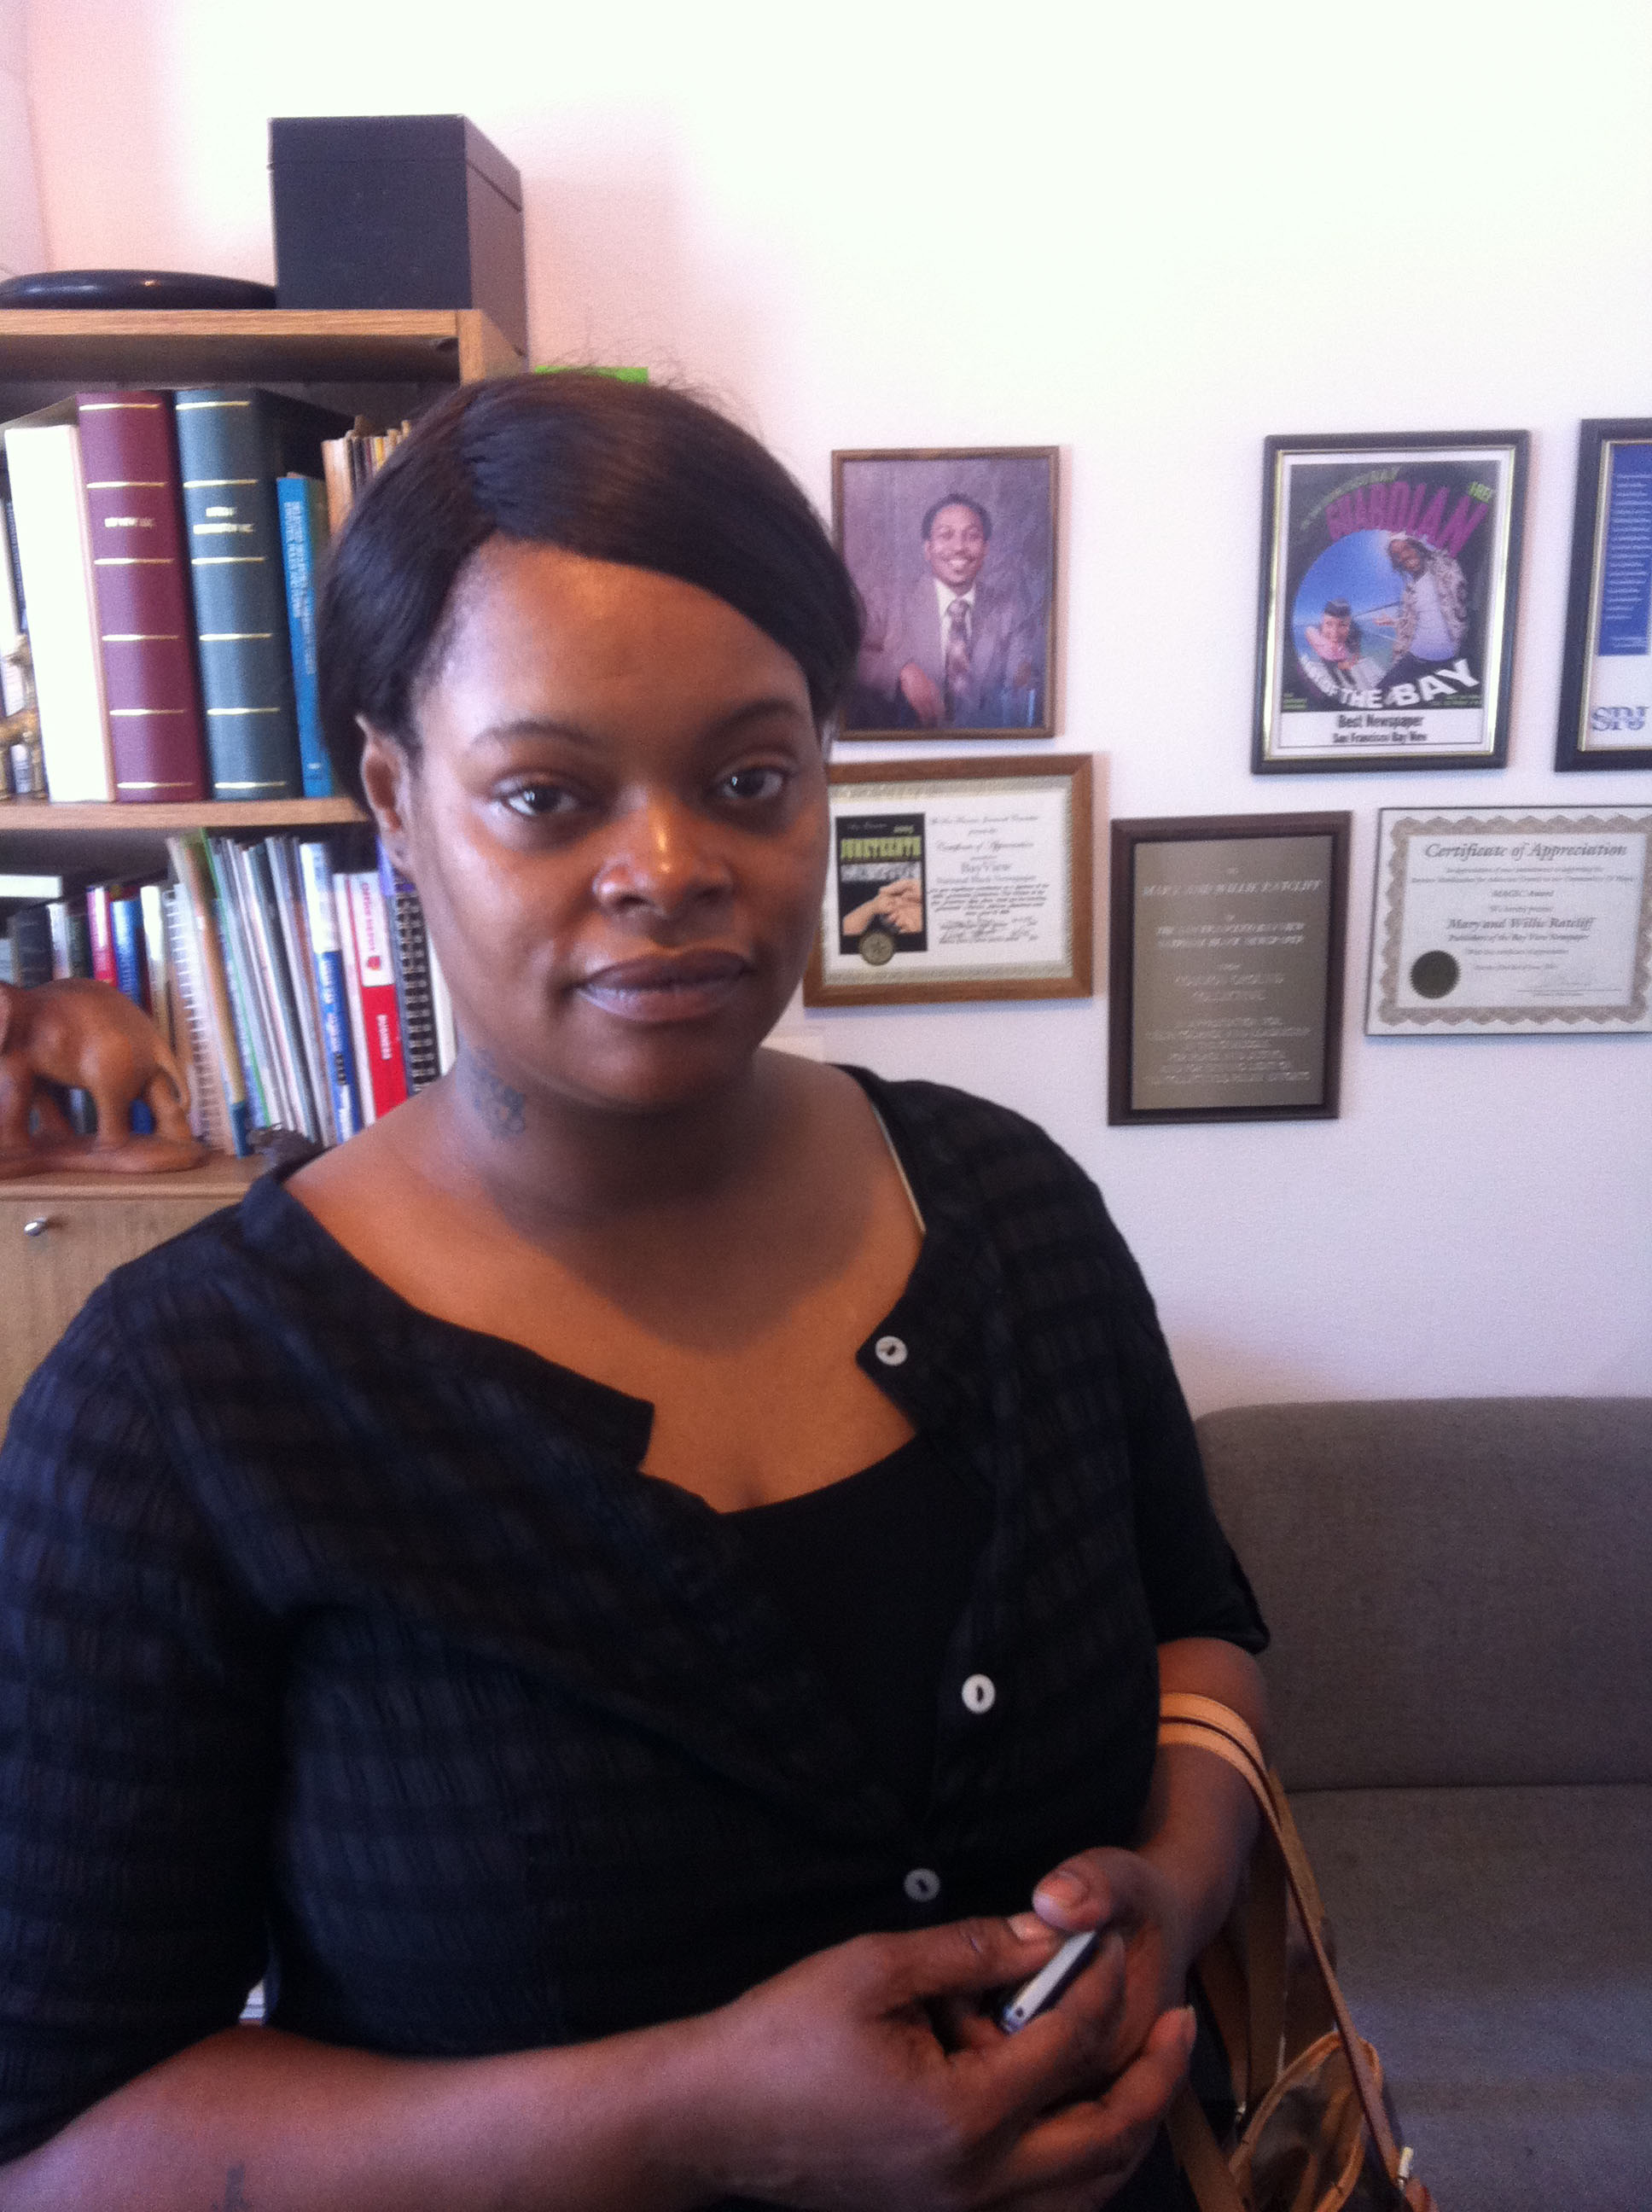 Denika-Chatman3, Hell hath no fury like a woman scorned: An interview with the mother of Kenneth Harding, Local News & Views